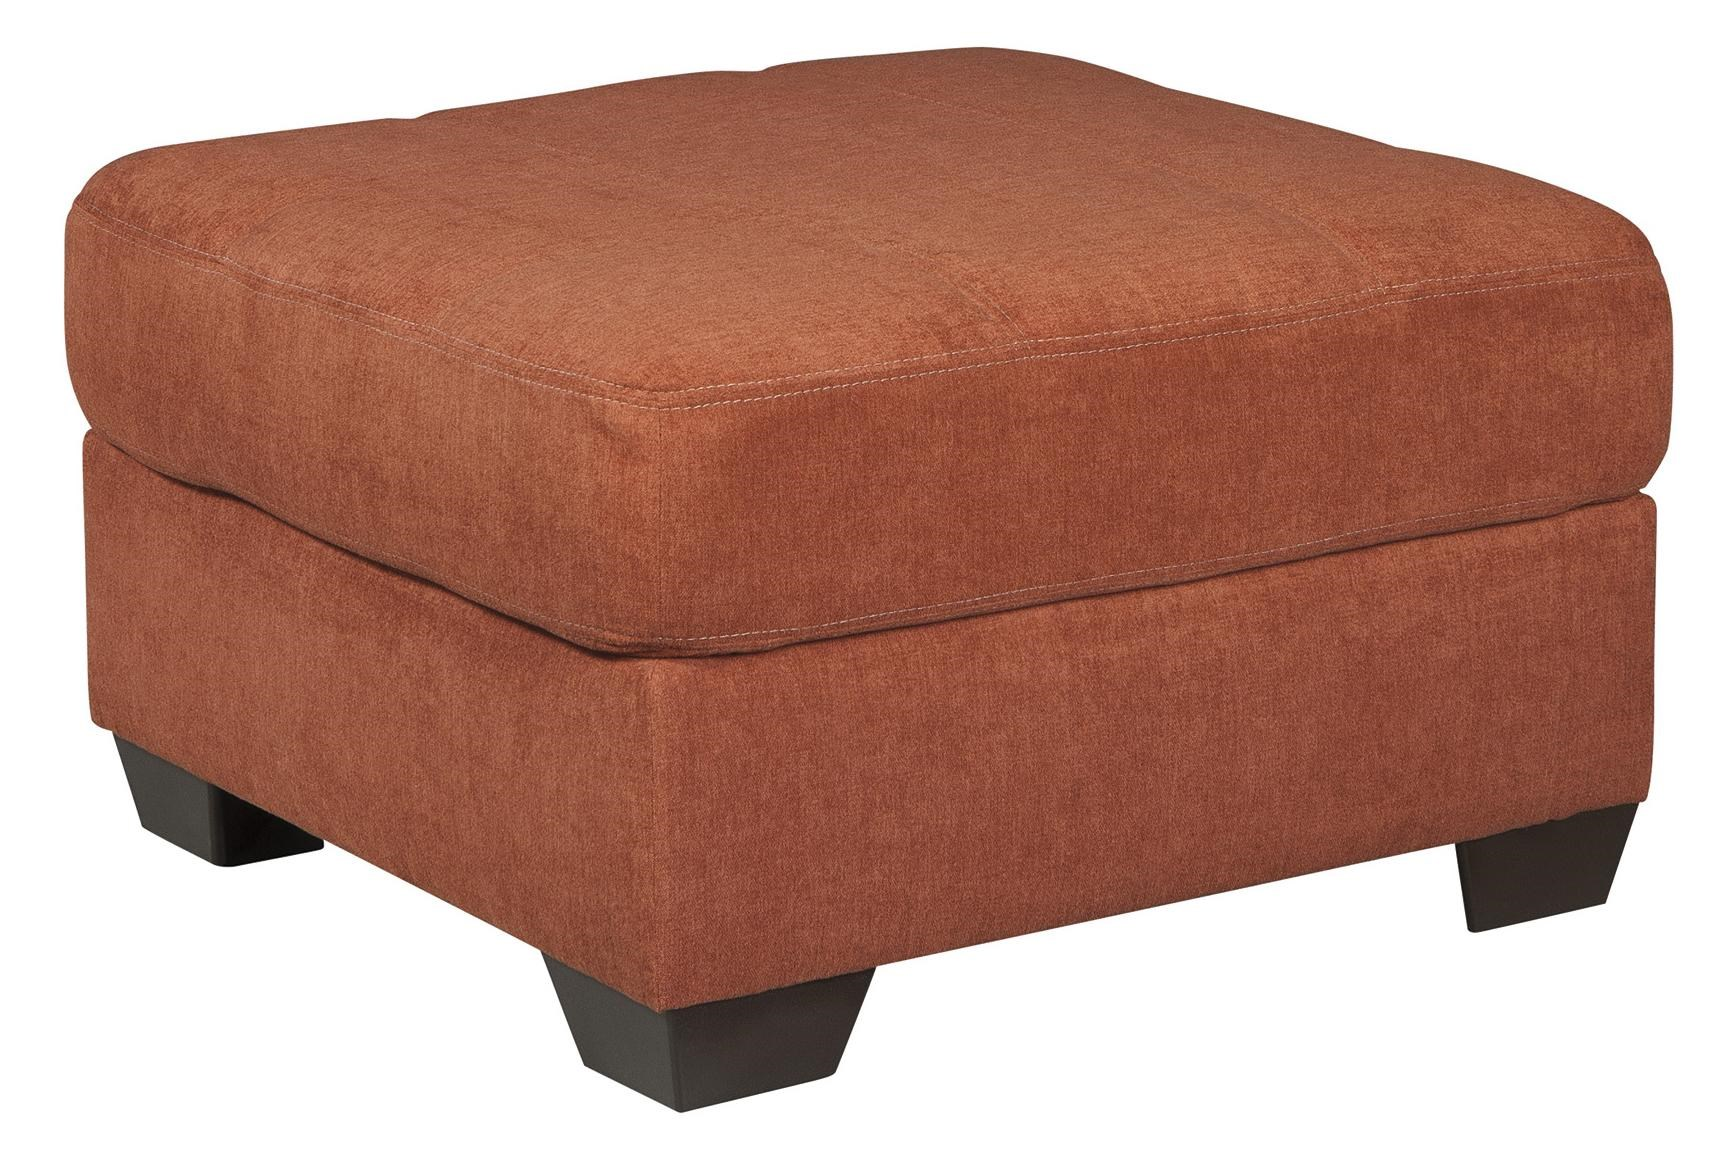 Benchcraft Delta City - Rust Contemporary Oversized Accent Ottoman - Ivan Smith Furniture - Ottoman